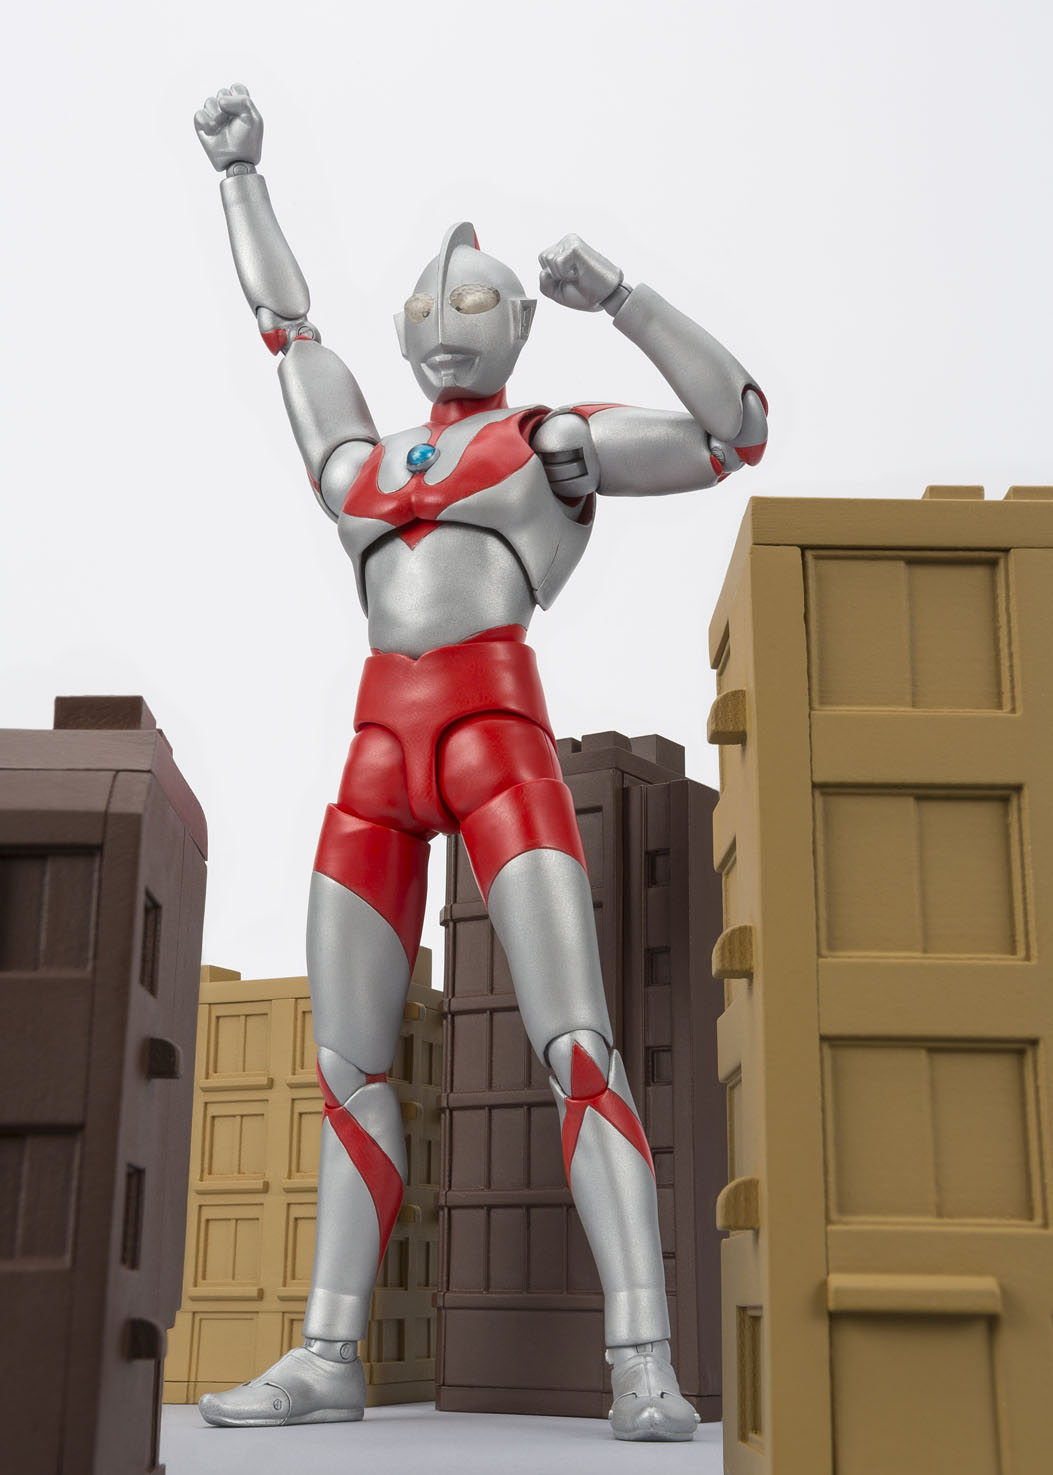 ULTRAMAN SET 50TH ANNIVERSARY EDITION FIGURA 15 CM ULTRAMAN 50TH ANNIVERSARY S.H. FIGUARTS